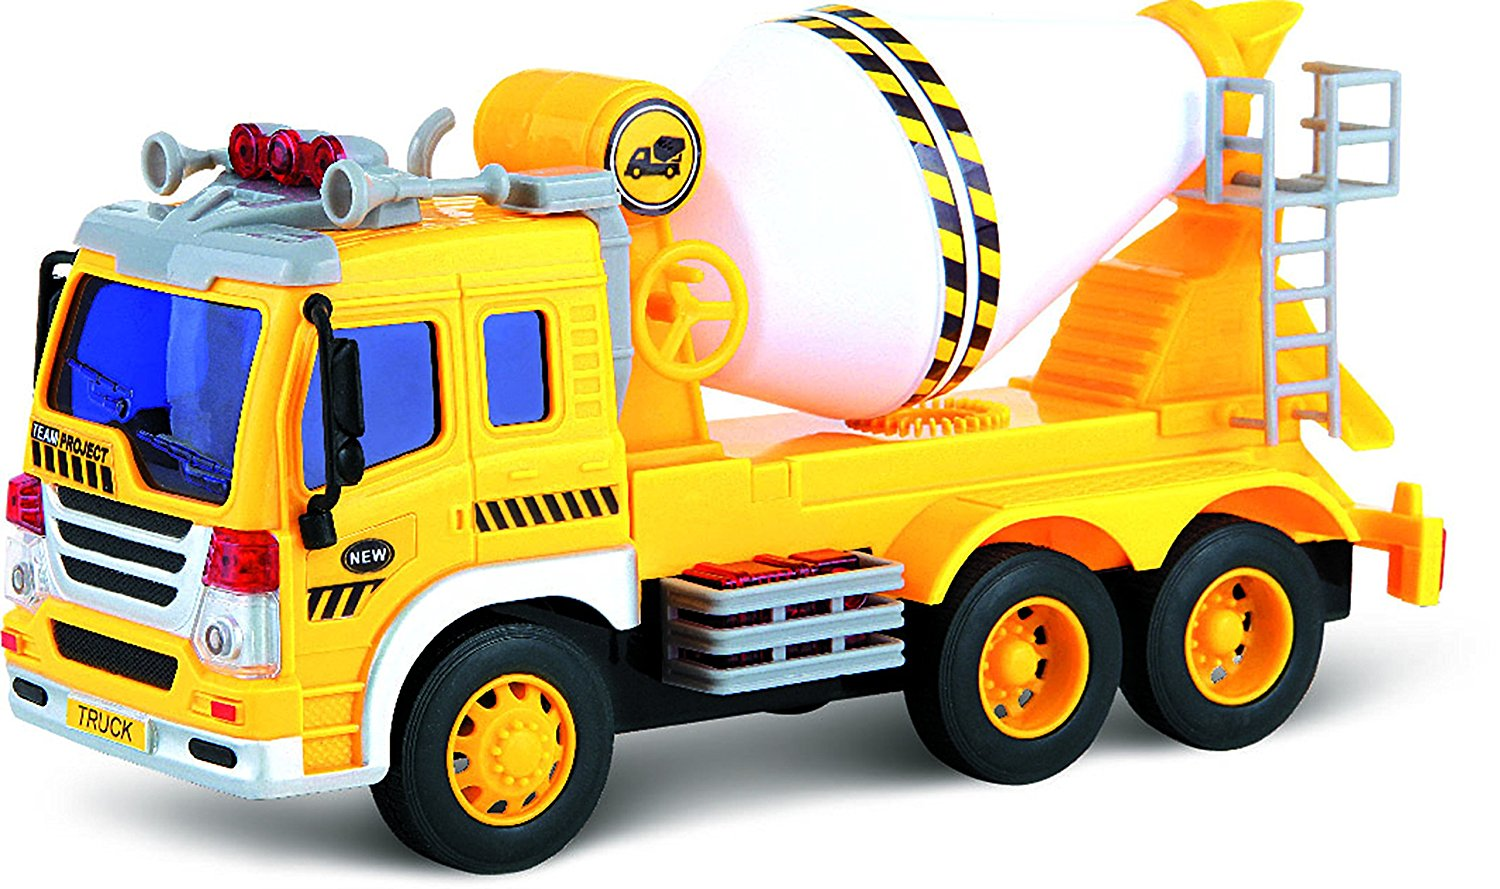 1500x889 Friction Powered Toy Cement Mixer Truck With Lights